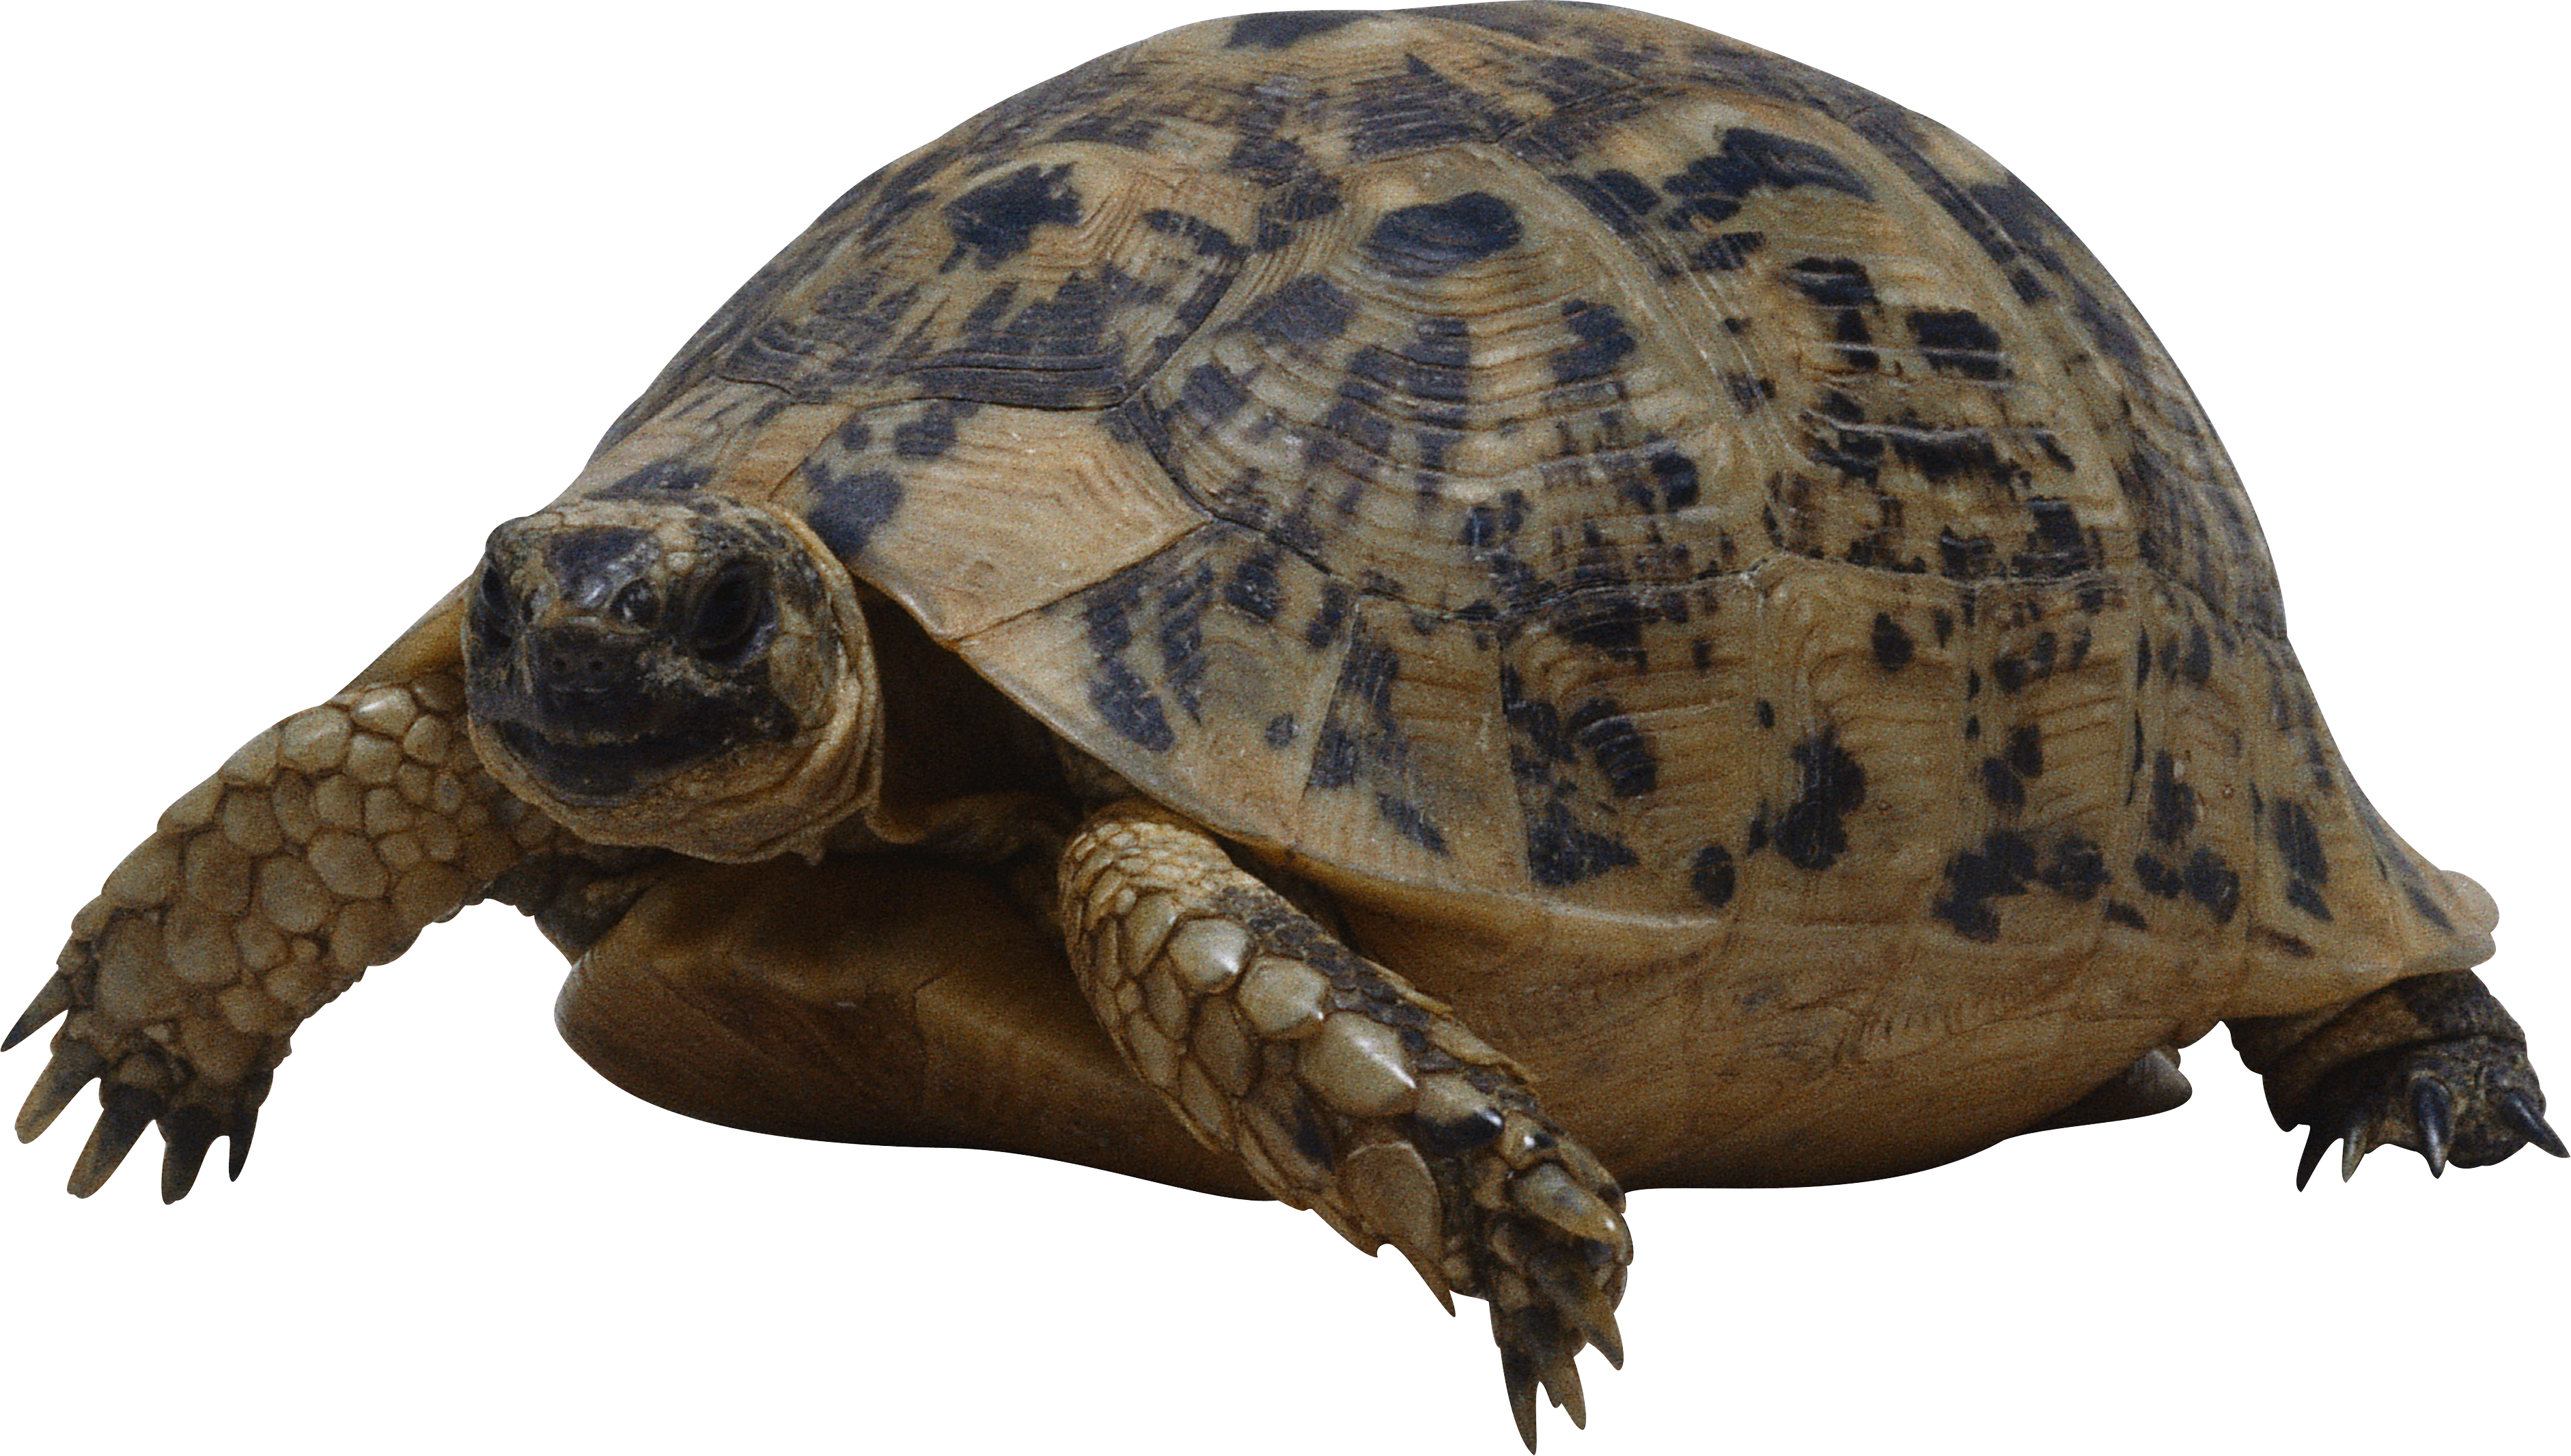 Png images free download. Clipart turtle water